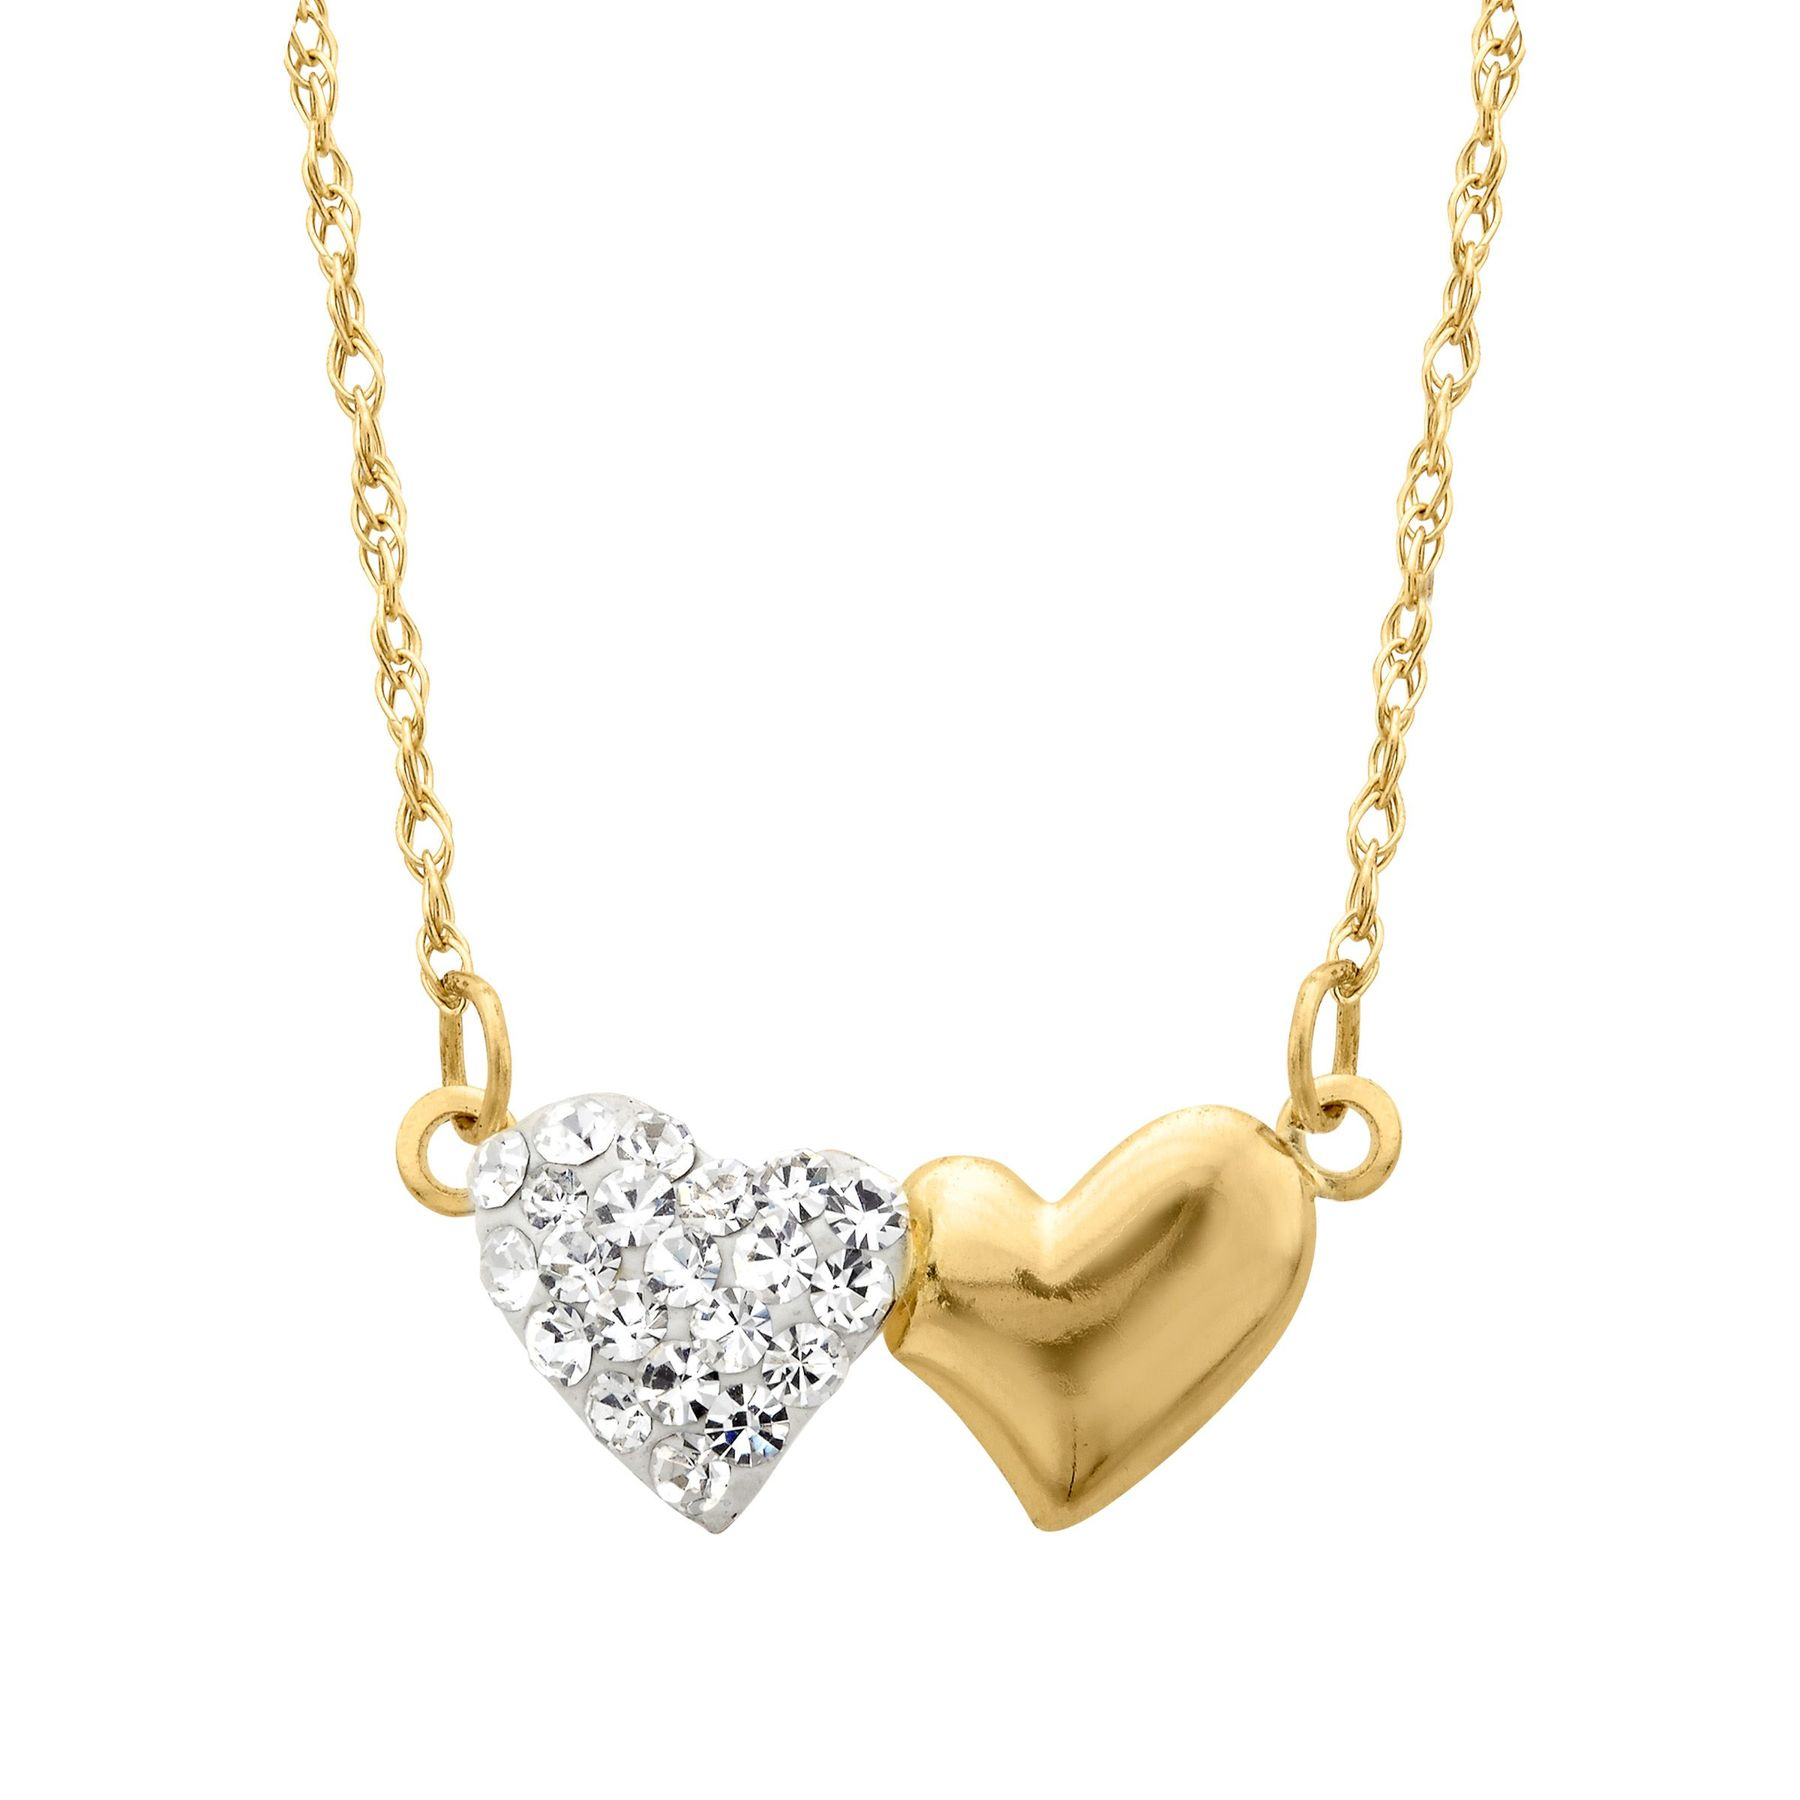 white heart product necklace ic rose pendant of gold diamond dancing moss ben pagespeed qitok double image